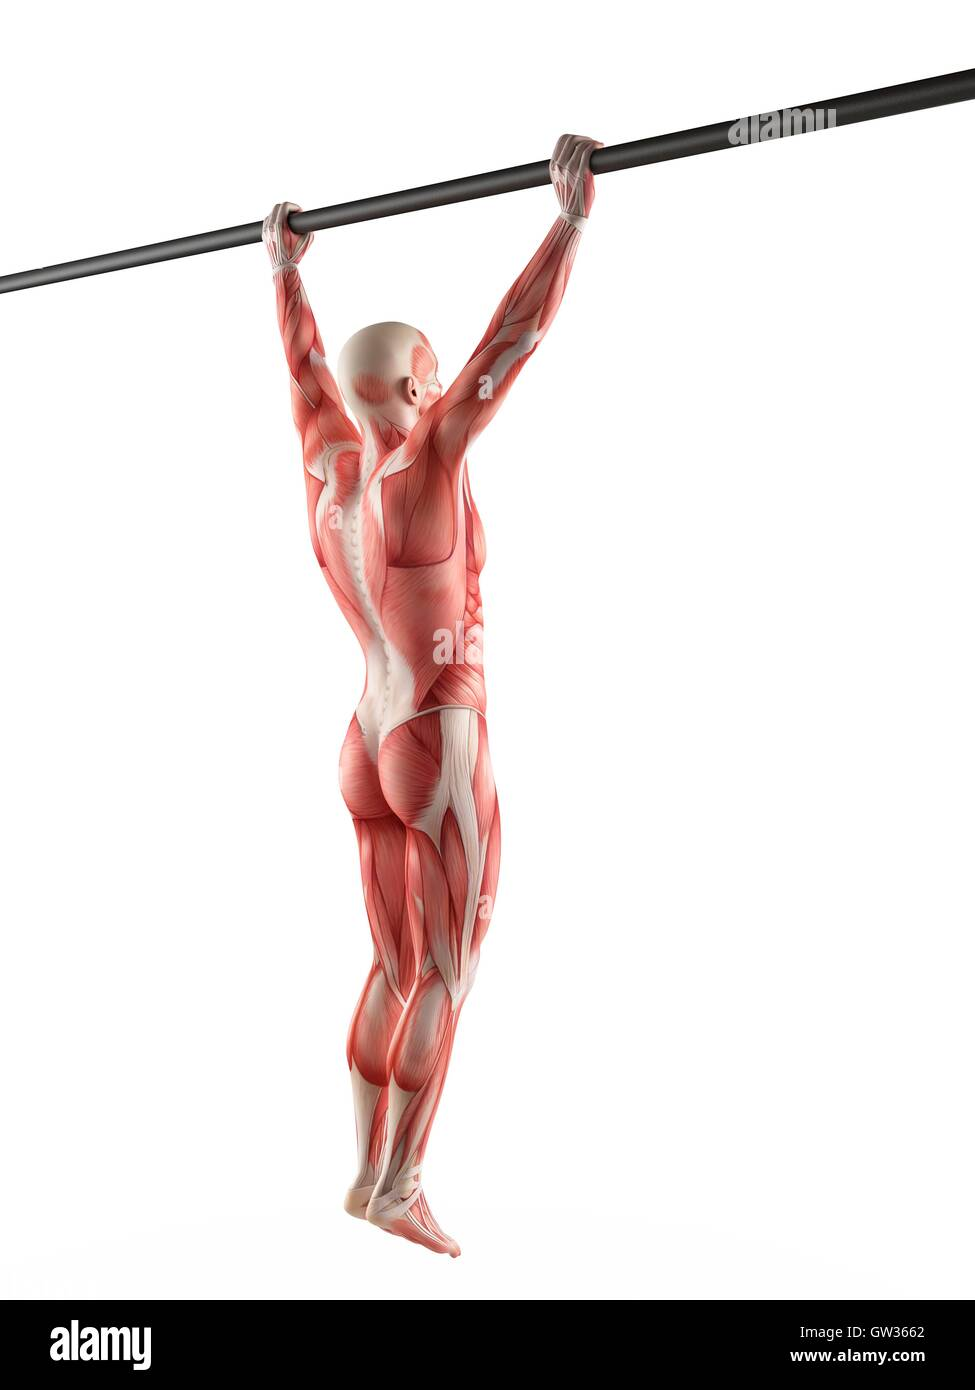 Pull Ups Exercise Cut Out Stock Images & Pictures - Alamy